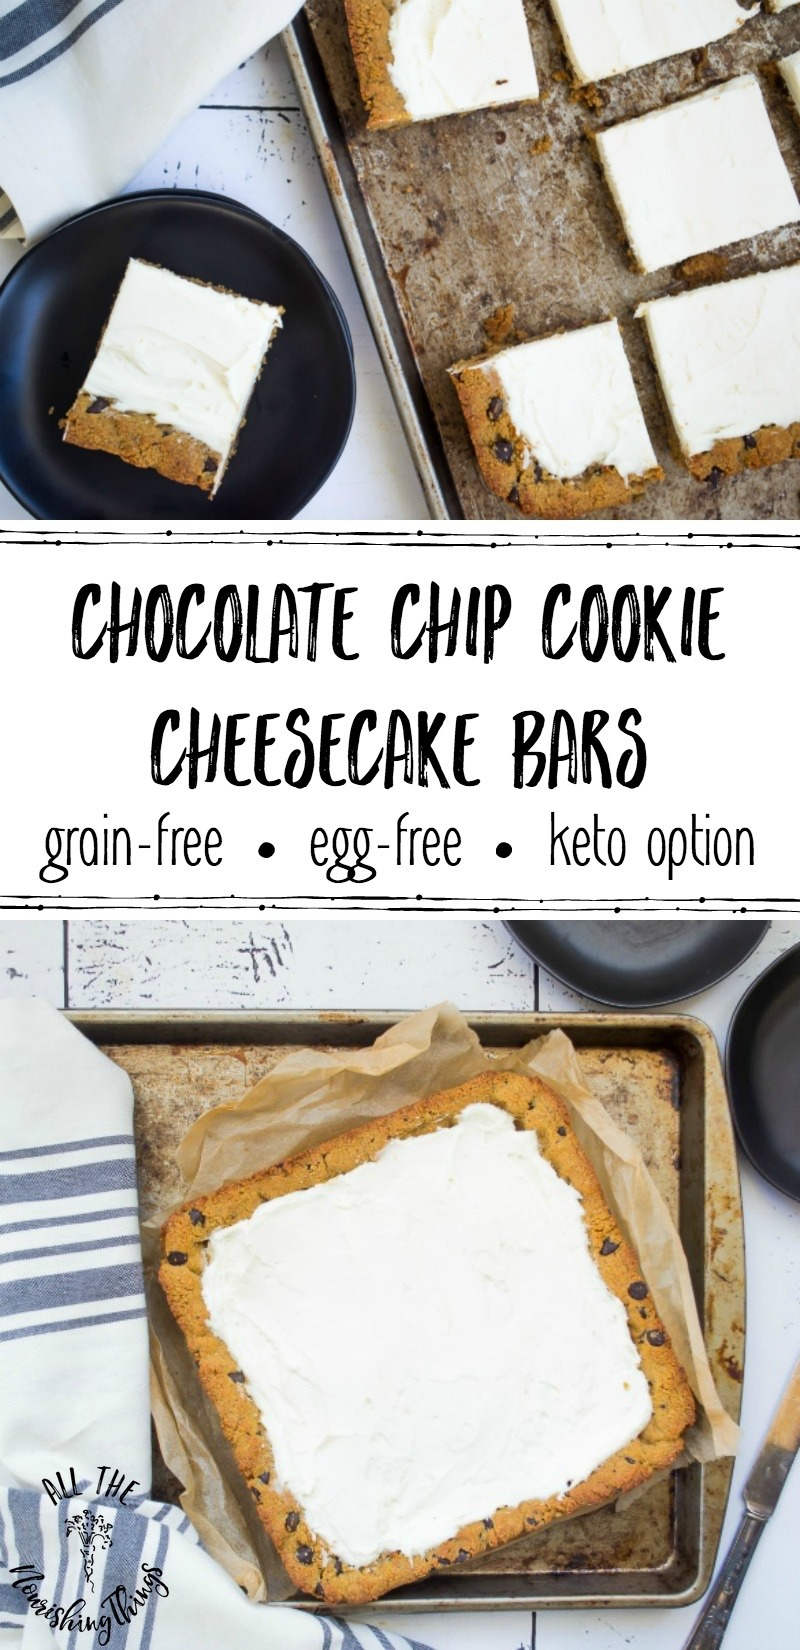 chocolate chip cookie cheesecake bar images with text overlay